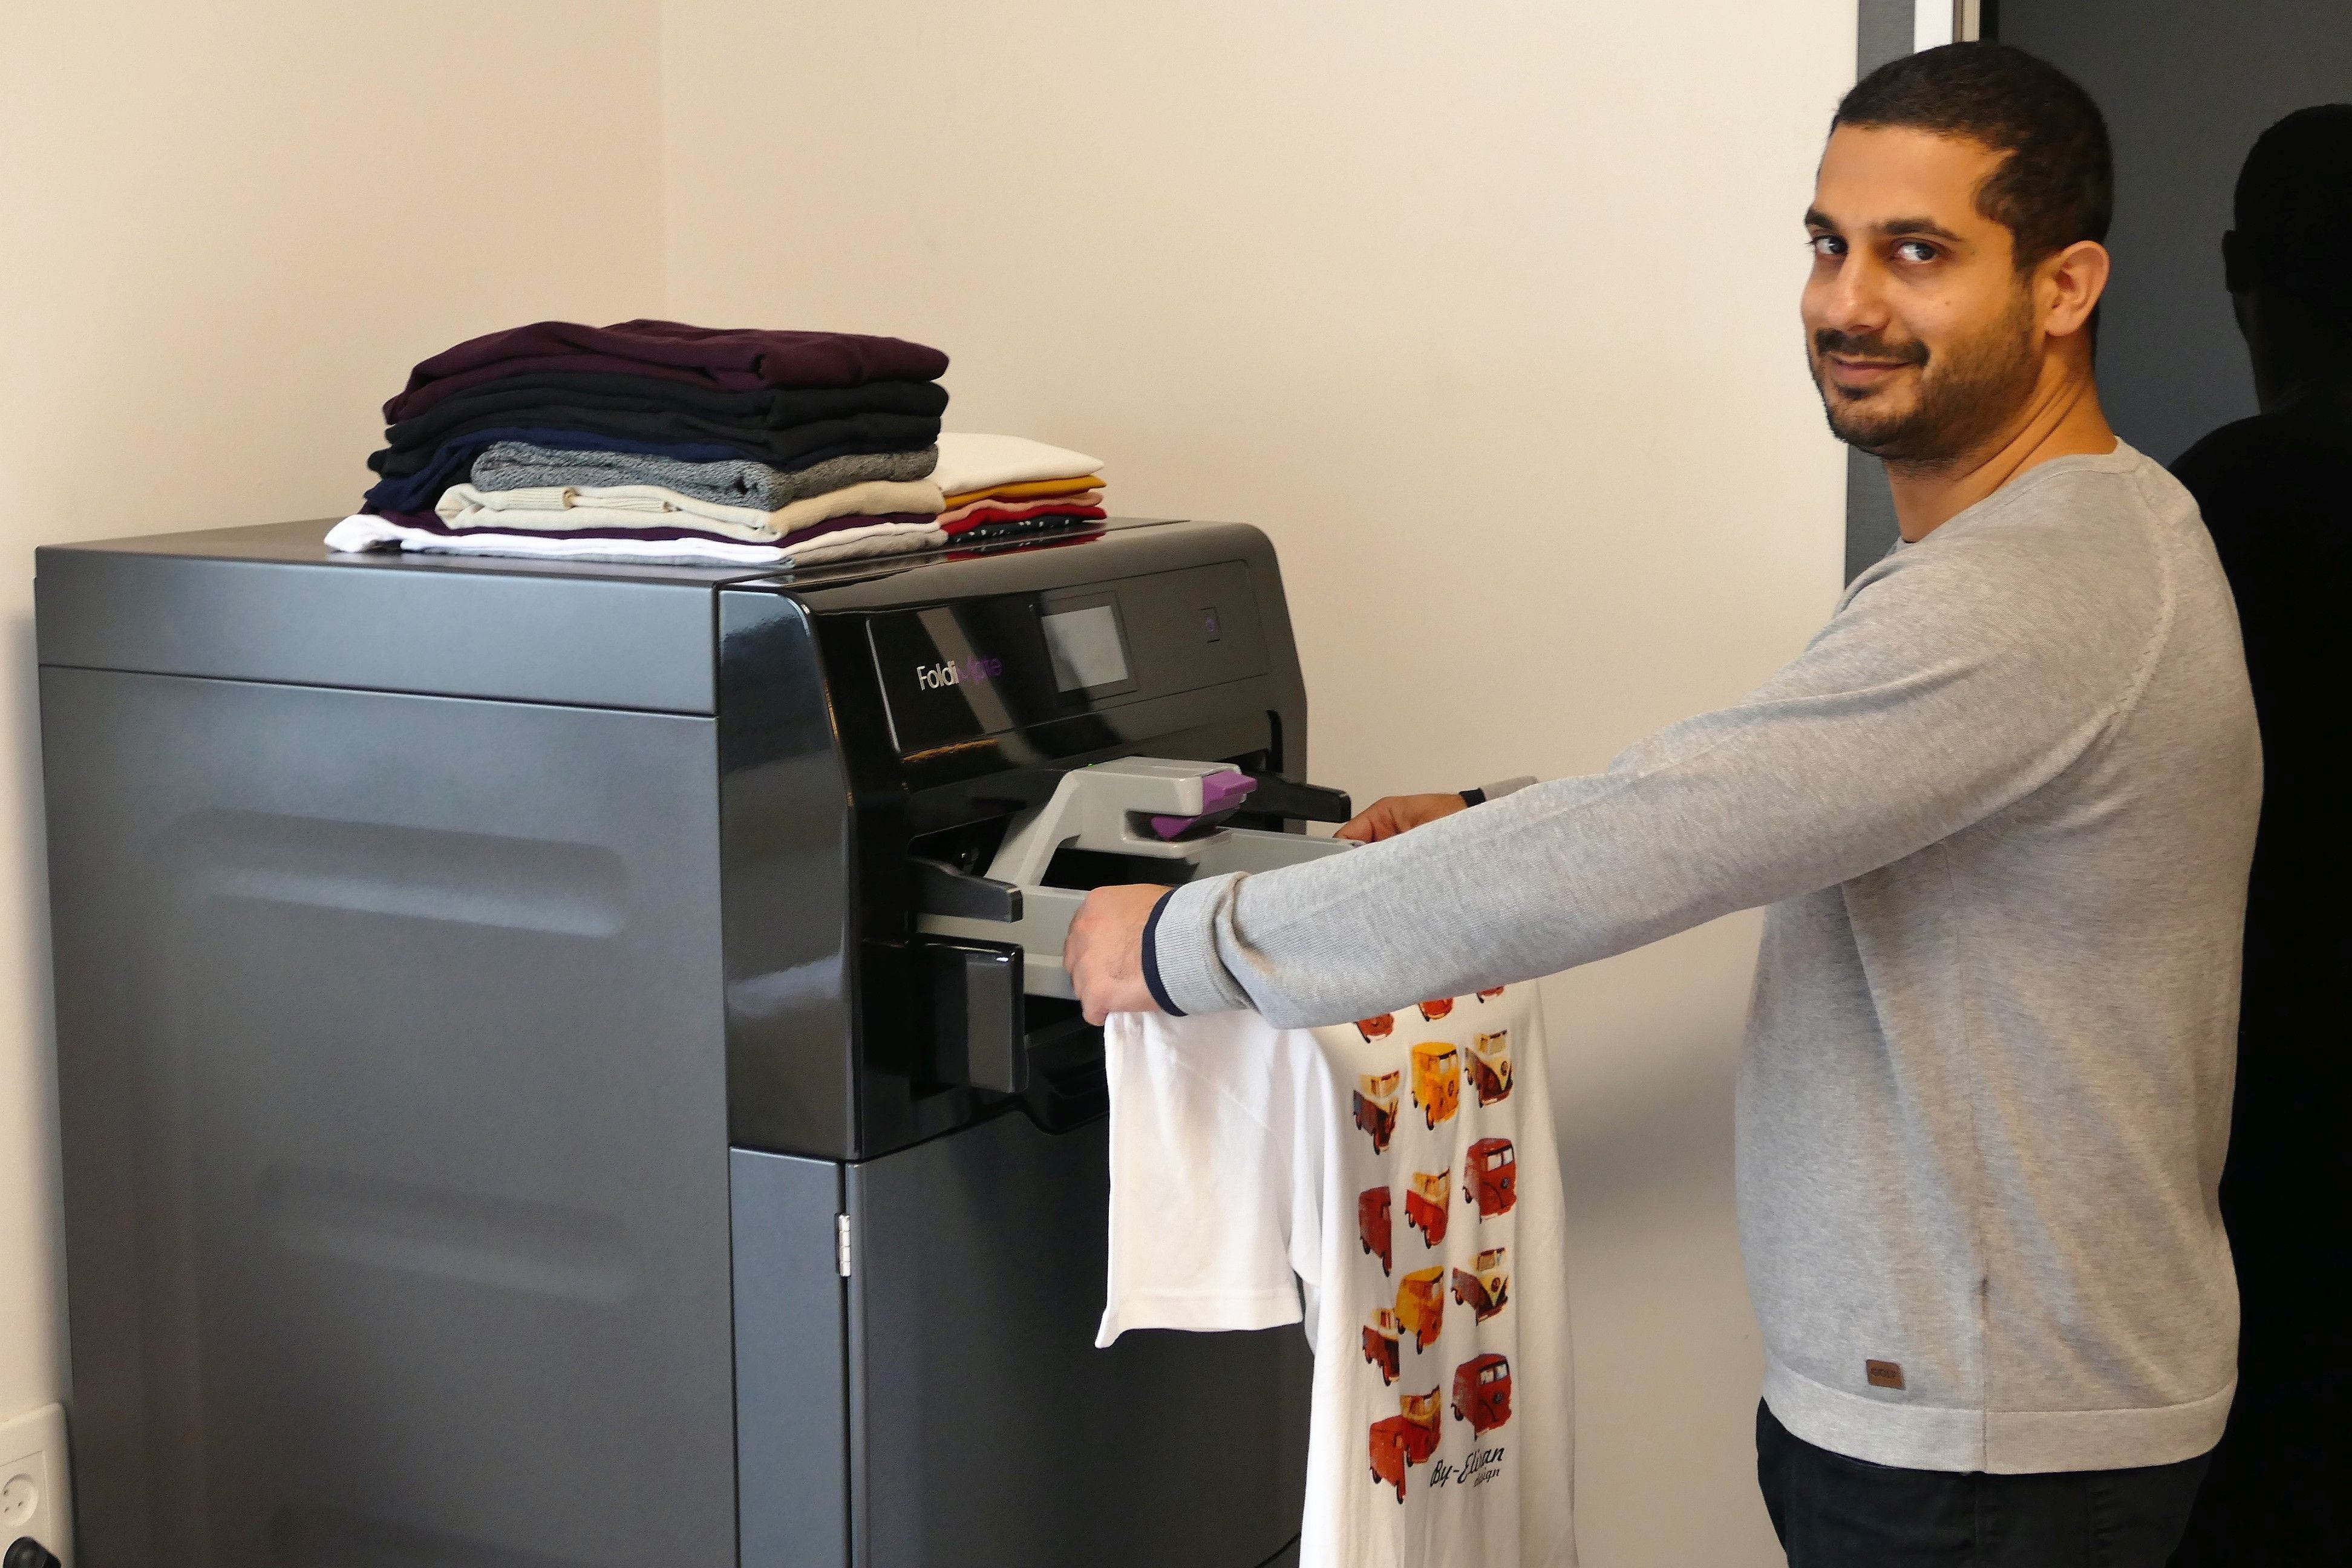 Machine that folds laundry debuts at Consumer Electronics Show and parents learn to dream again